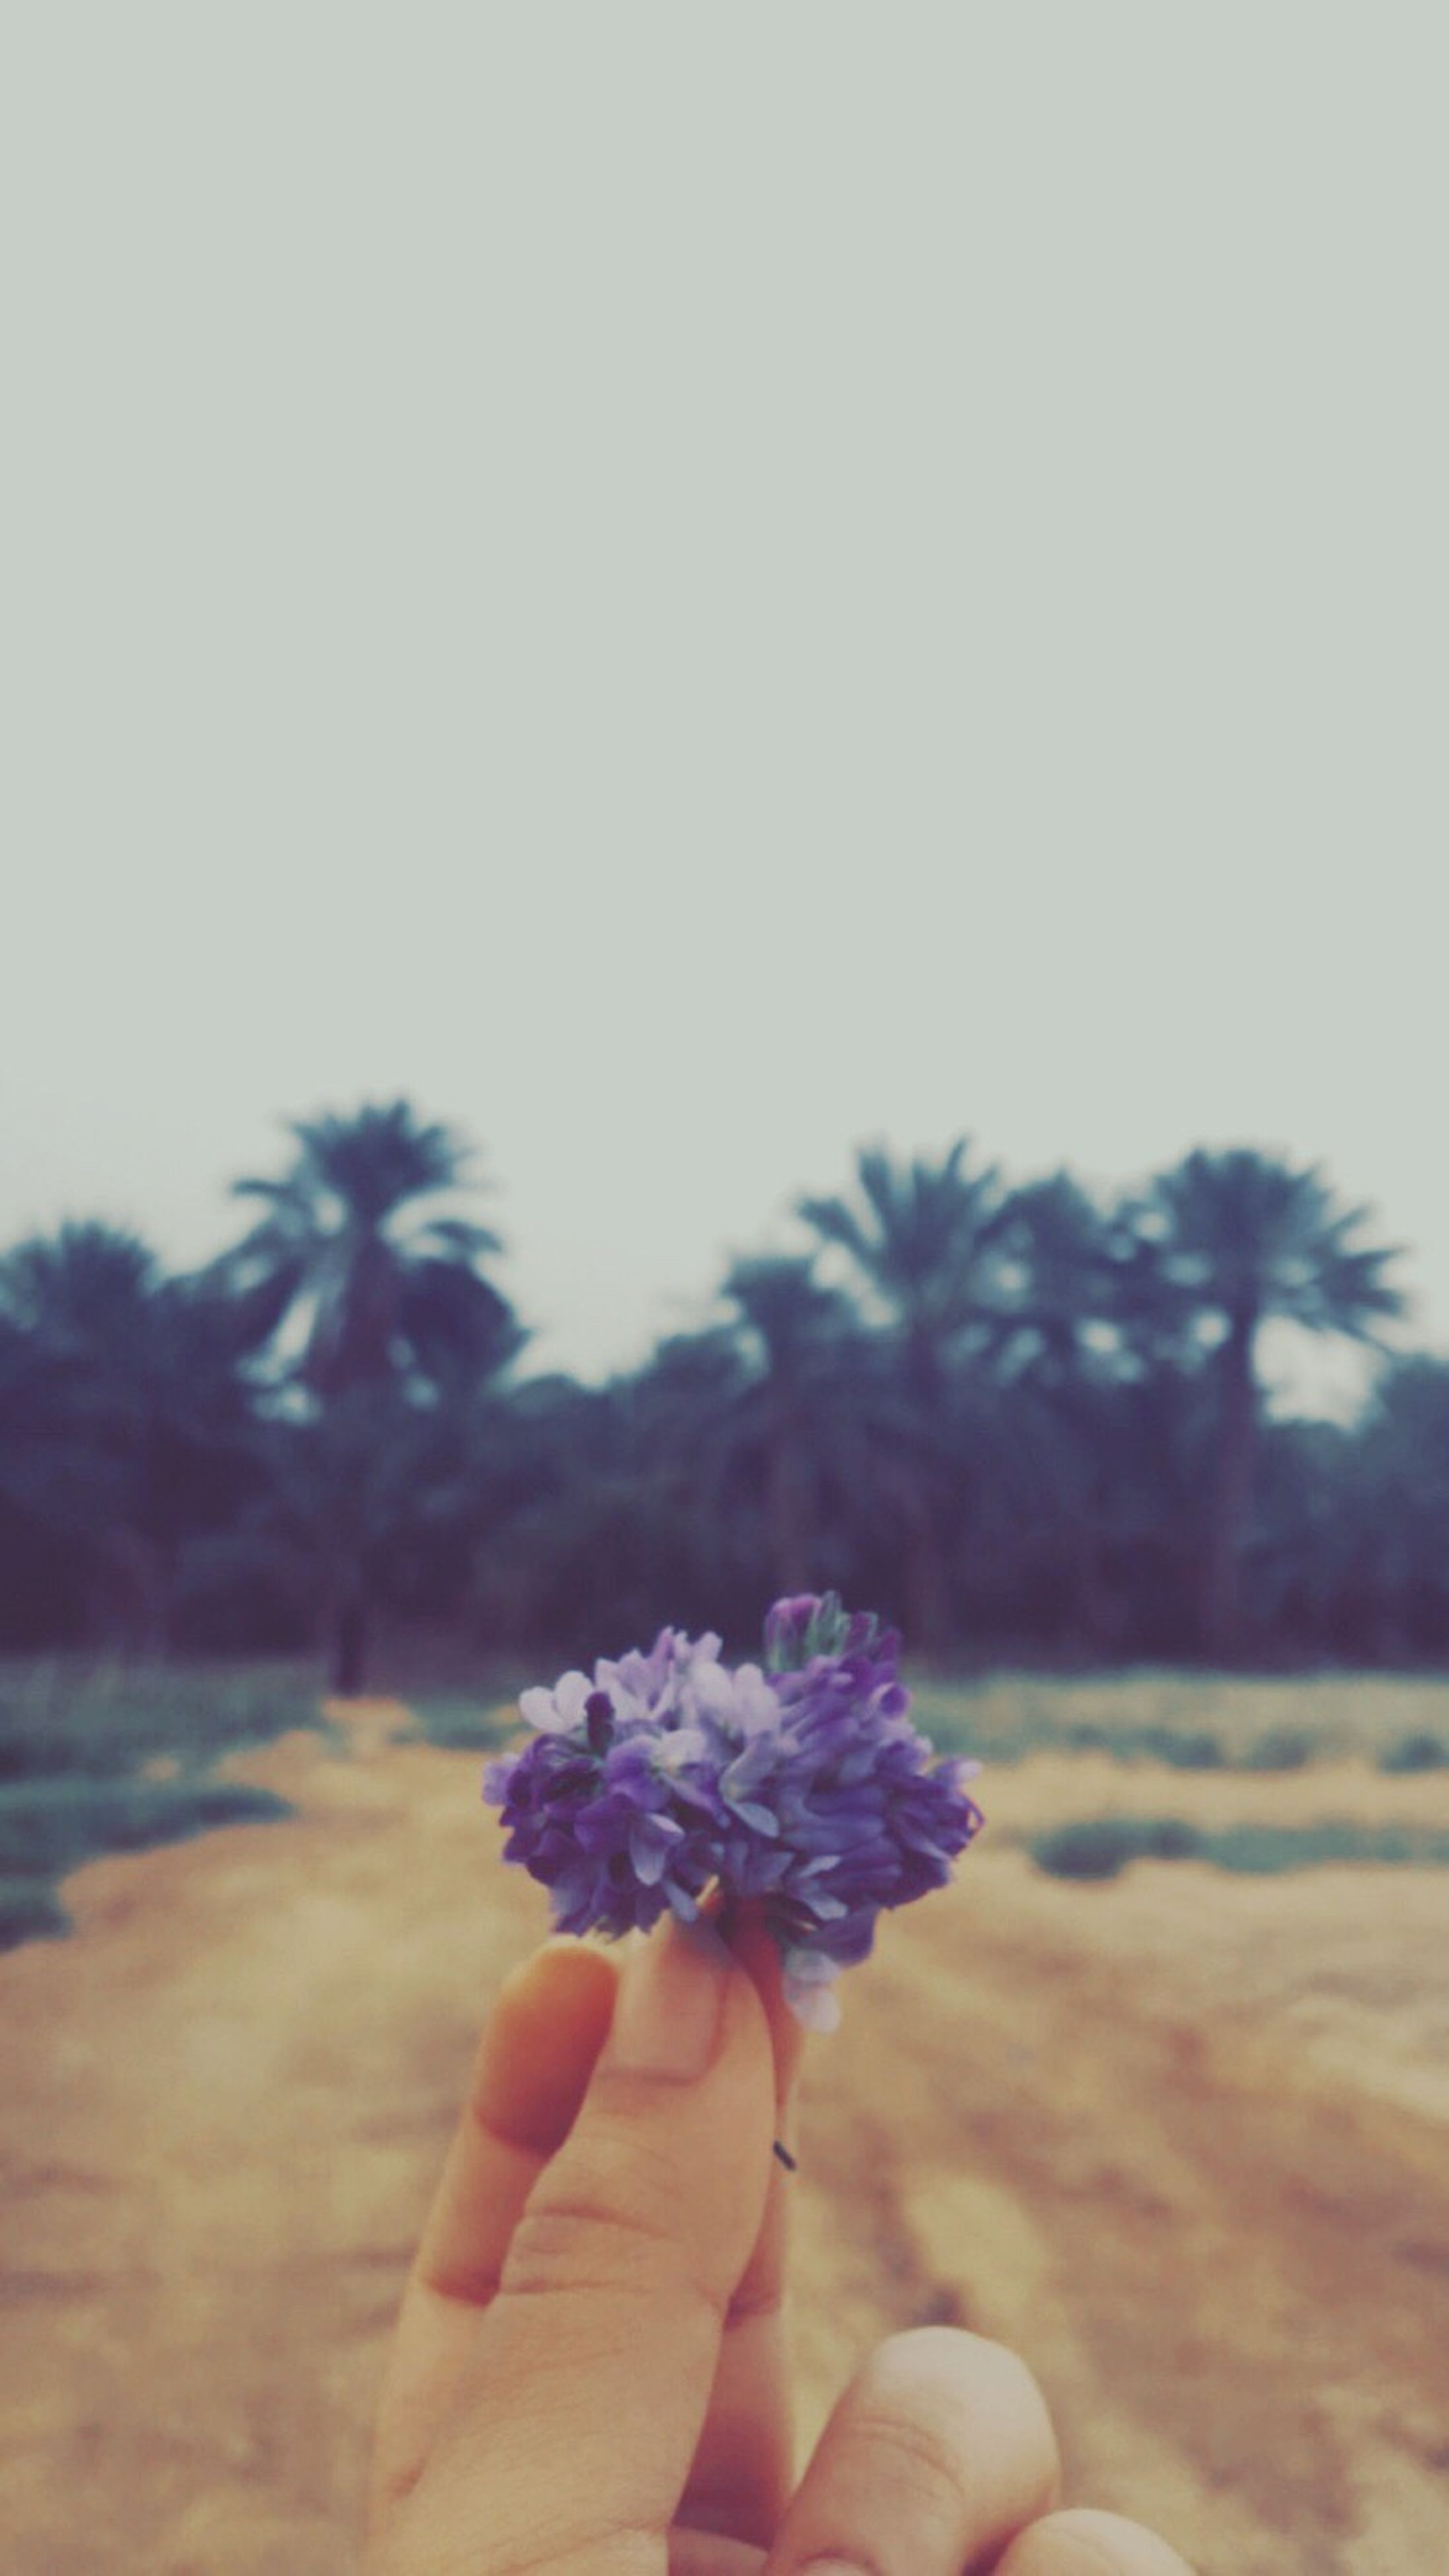 flower, human hand, one person, holding, human body part, nature, focus on foreground, fragility, flower head, real people, freshness, outdoors, close-up, beauty in nature, growth, day, leisure activity, sky